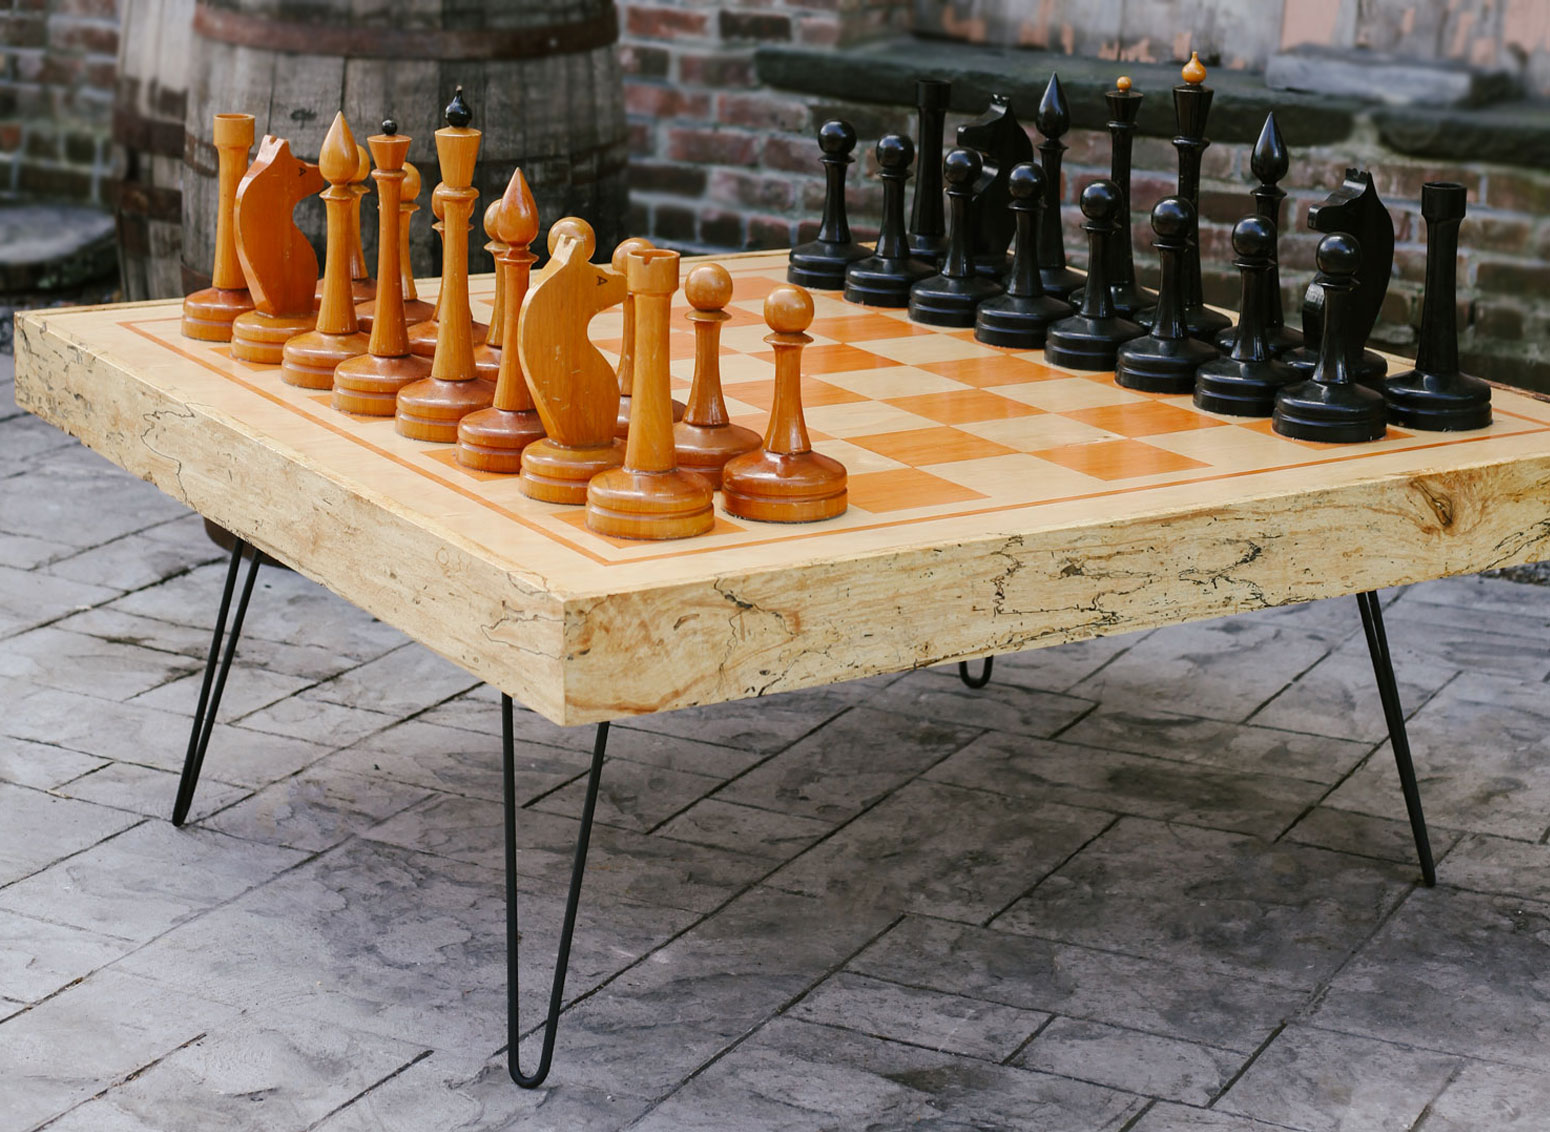 rent-giant-garden-chess-lawn-games-ny.jpg